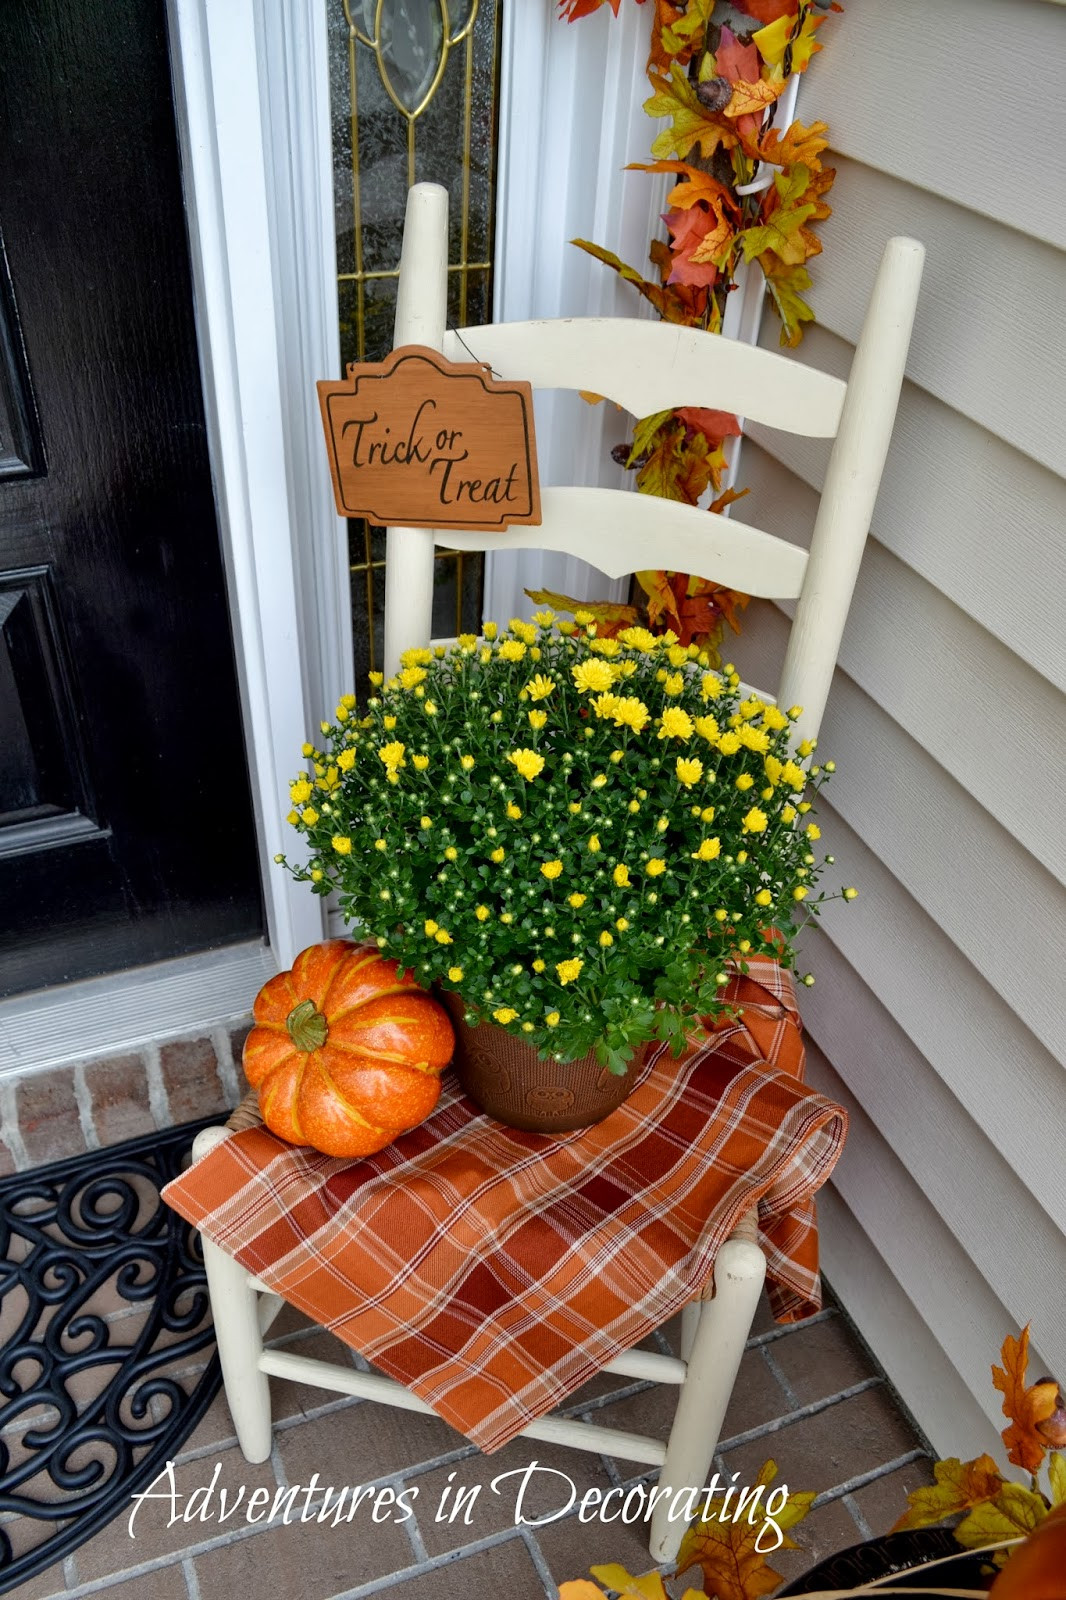 Front Porch Fall Decorations  Adventures in Decorating Our Fall Front Porch